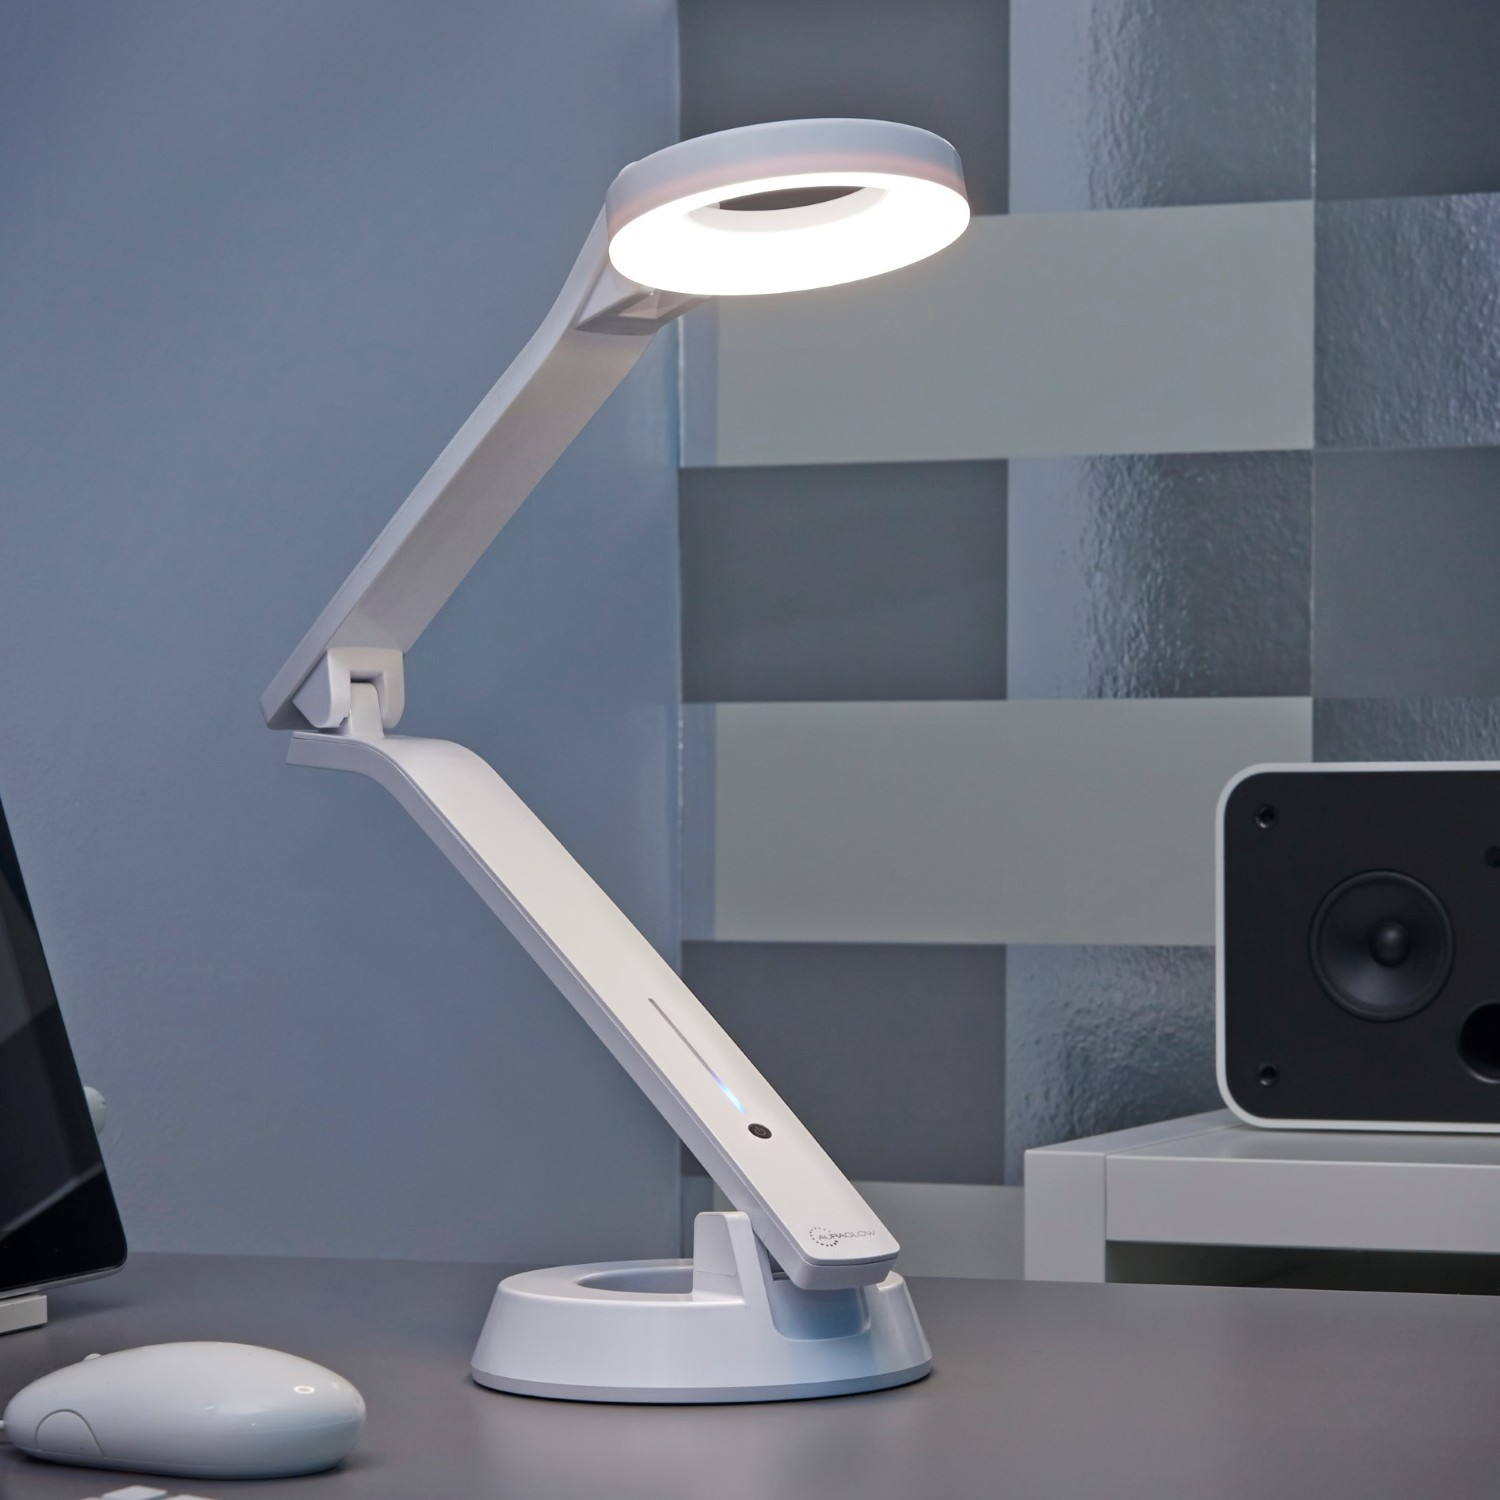 led halo desk lamp for office and home get the light just right